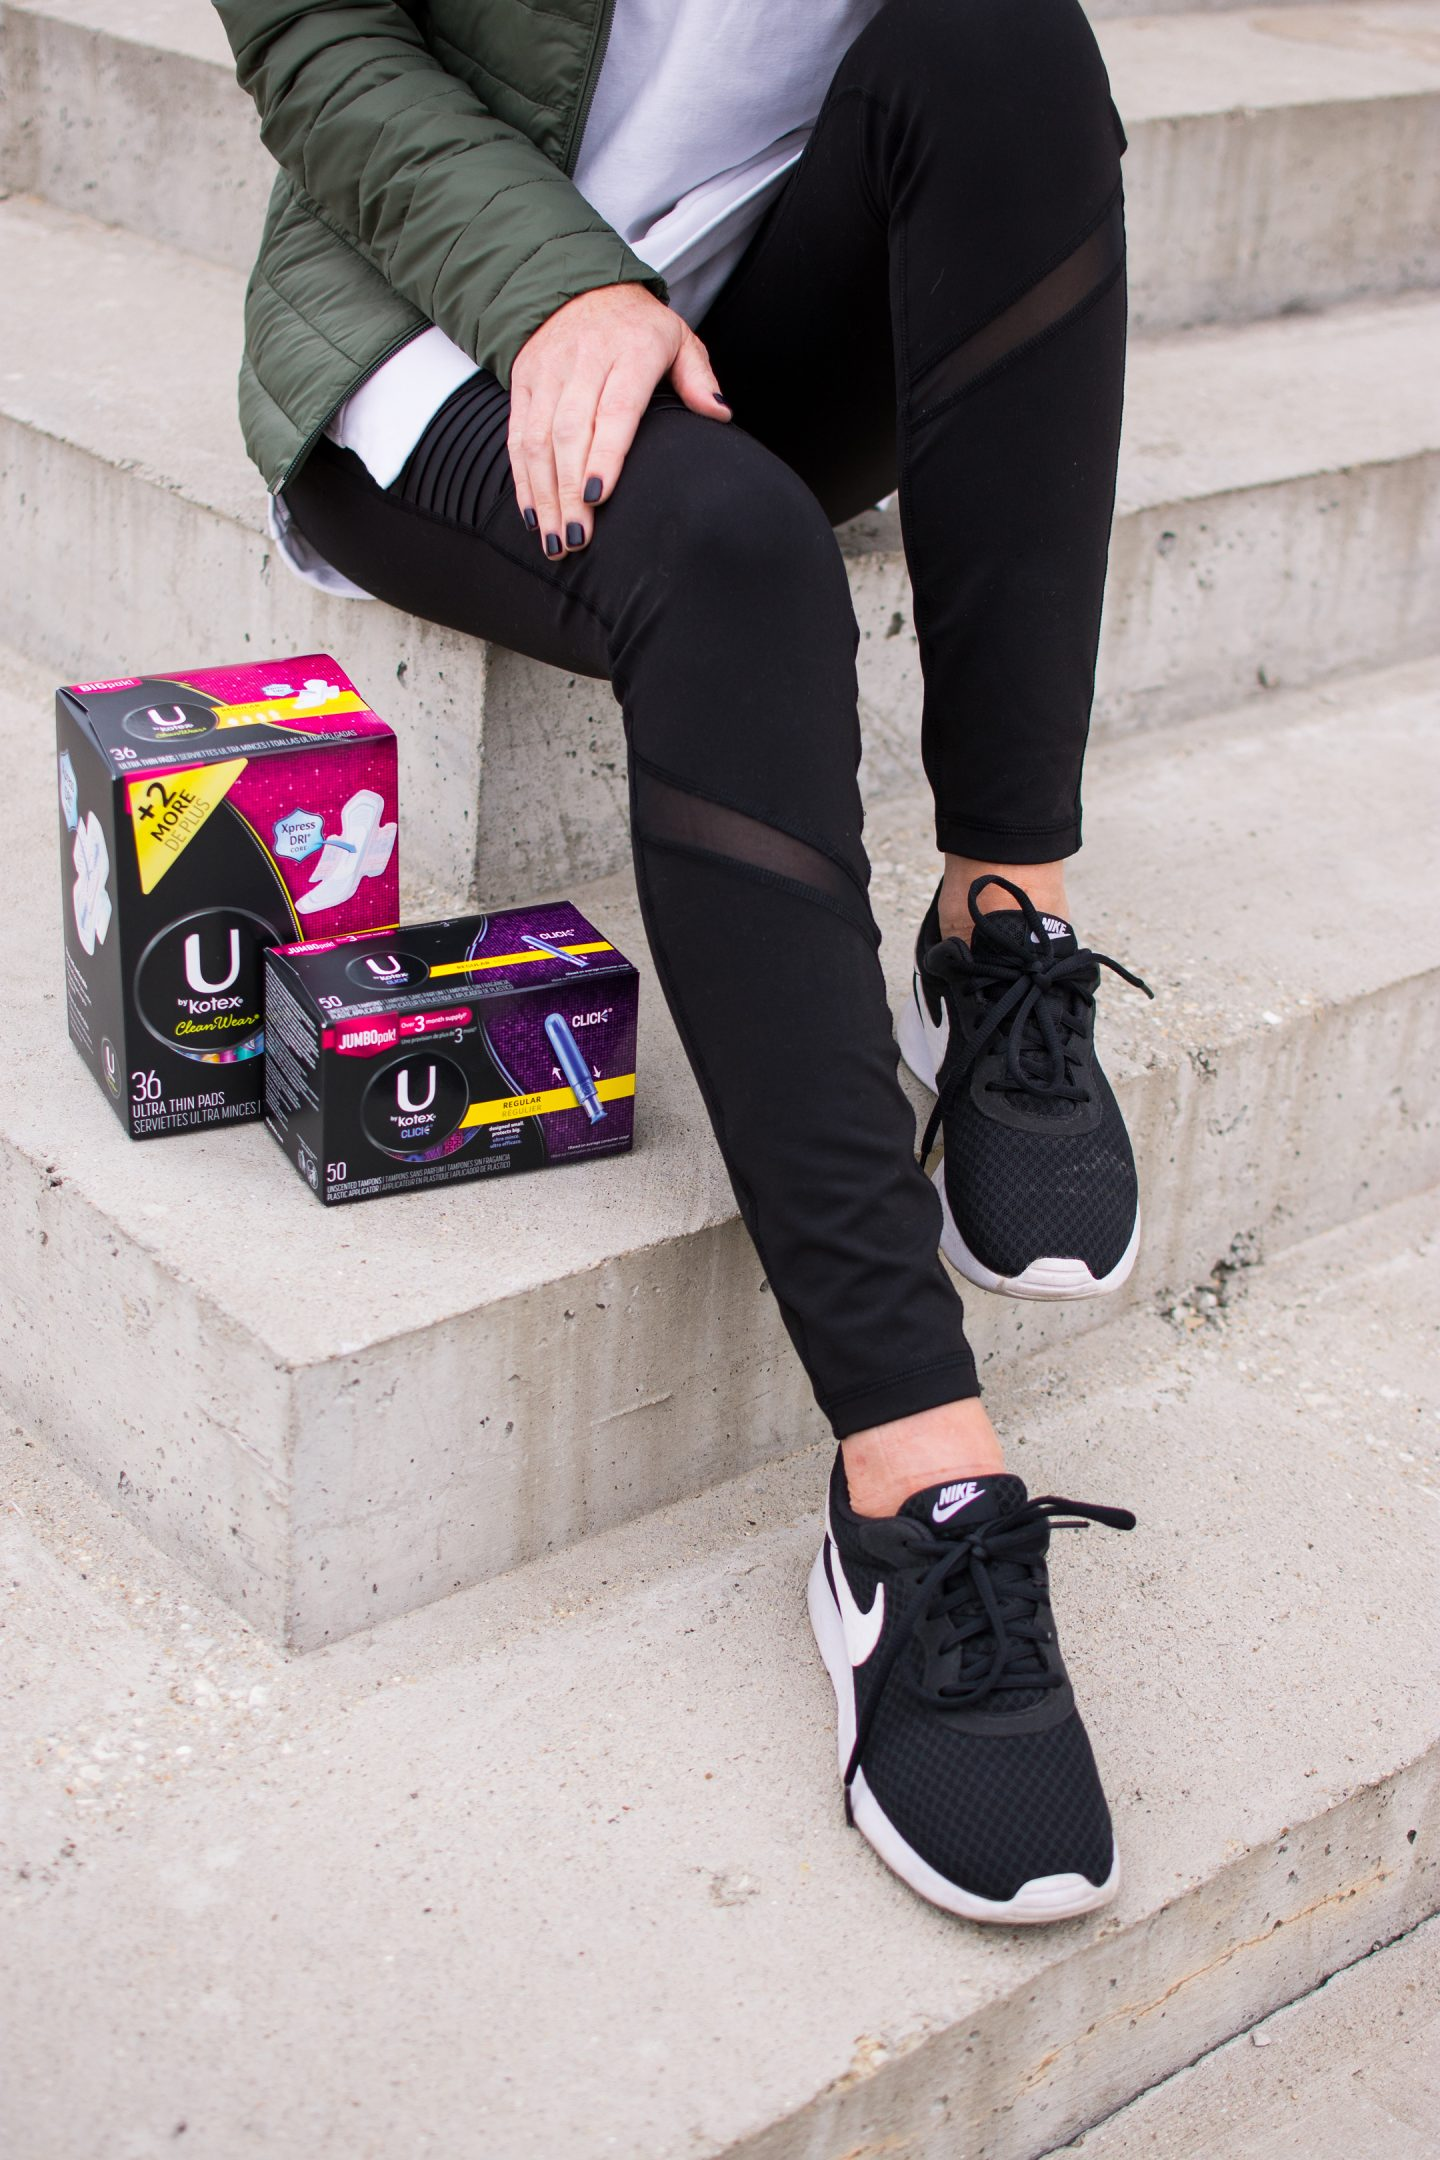 be part of the movement to end period poverty, access to period supplies for women in need, U by kotex